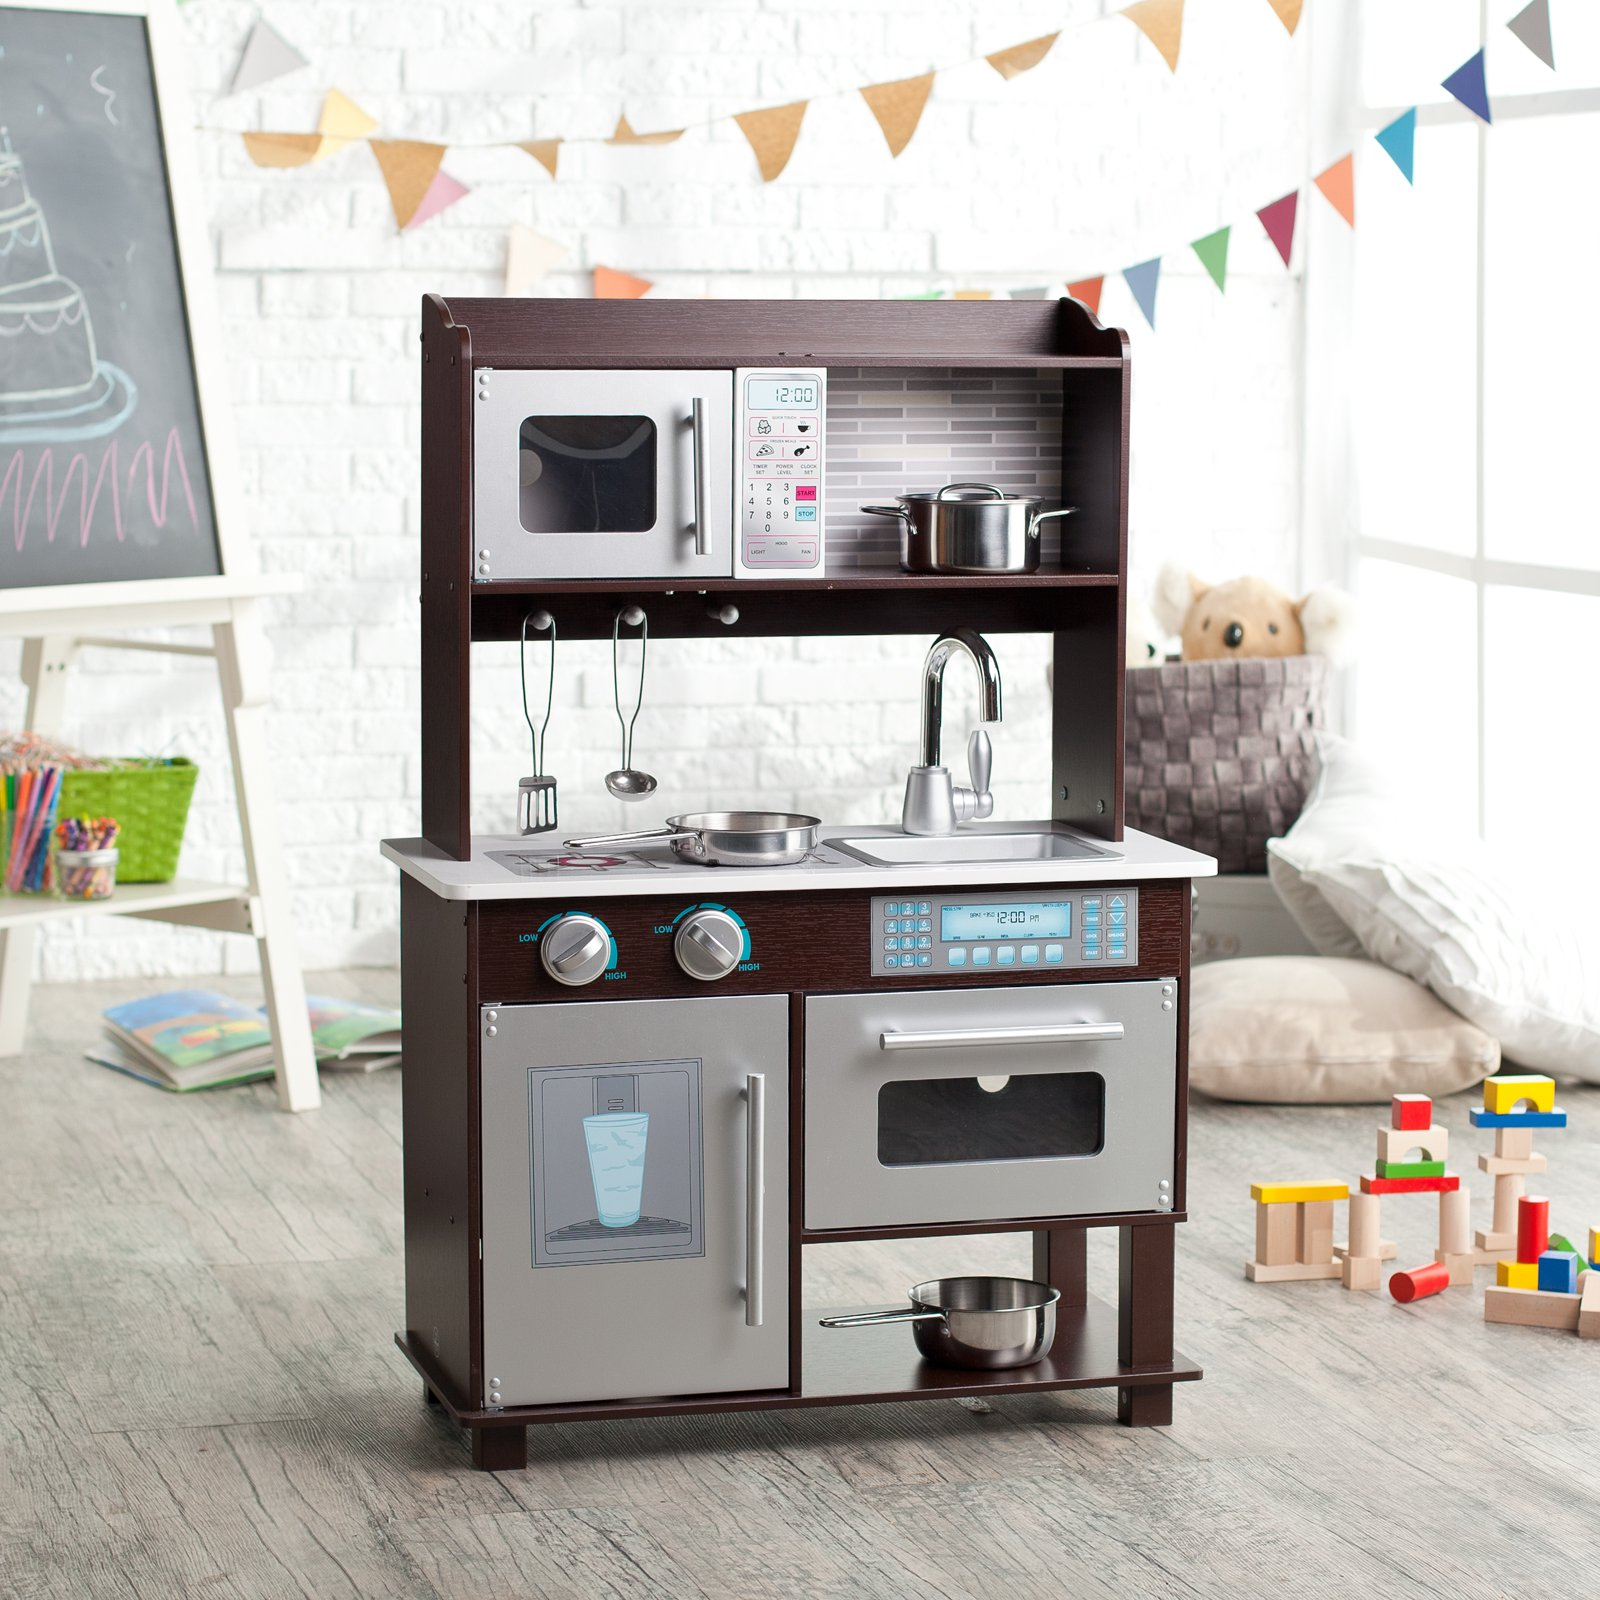 kidkraft espresso toddler play kitchen with metal accessory set 53281 walmartcom - Kidkraft Espresso Kitchen